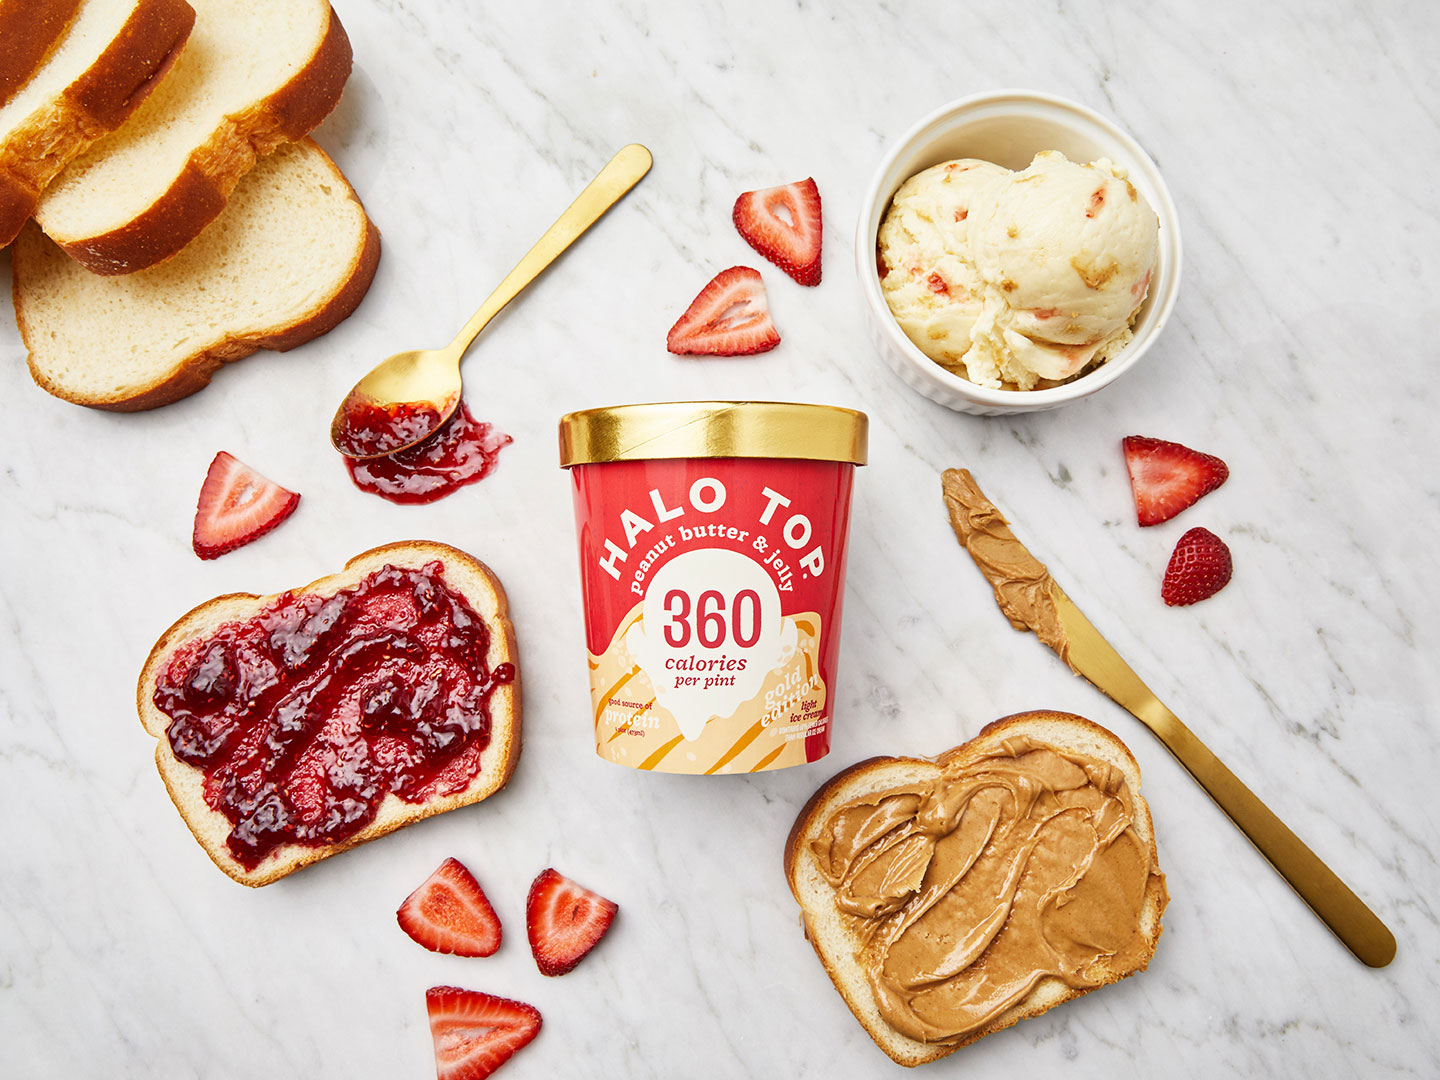 Halo Top's New Peanut Butter & Jelly Ice Cream Has a Super Surprising Mix-In